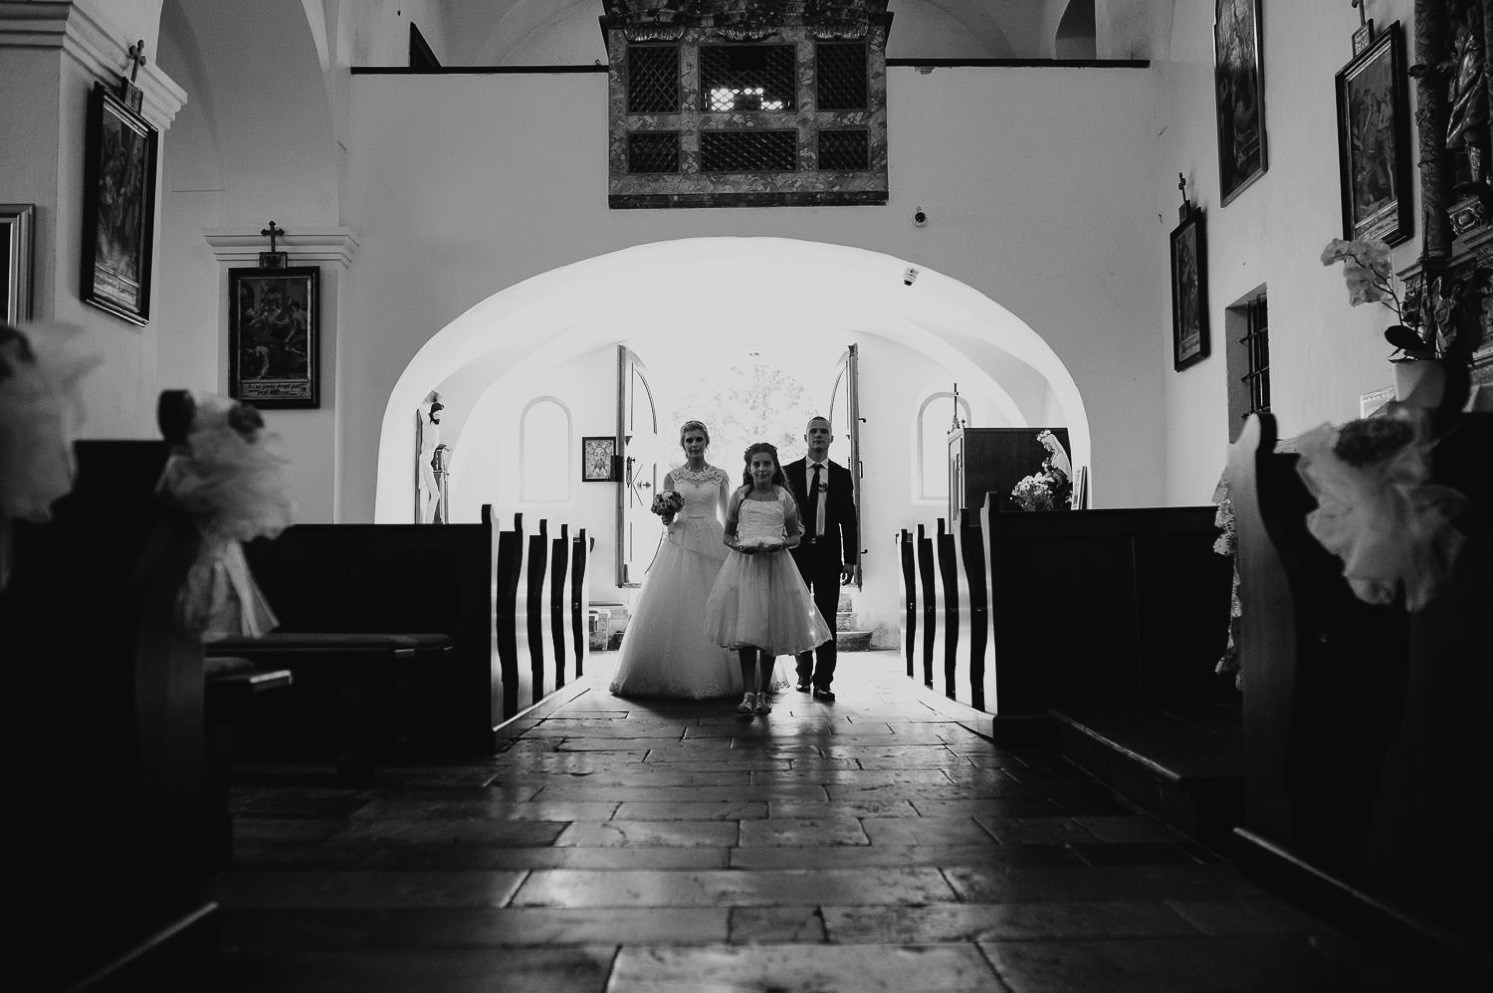 Wedding photographer Karlovac Croatia